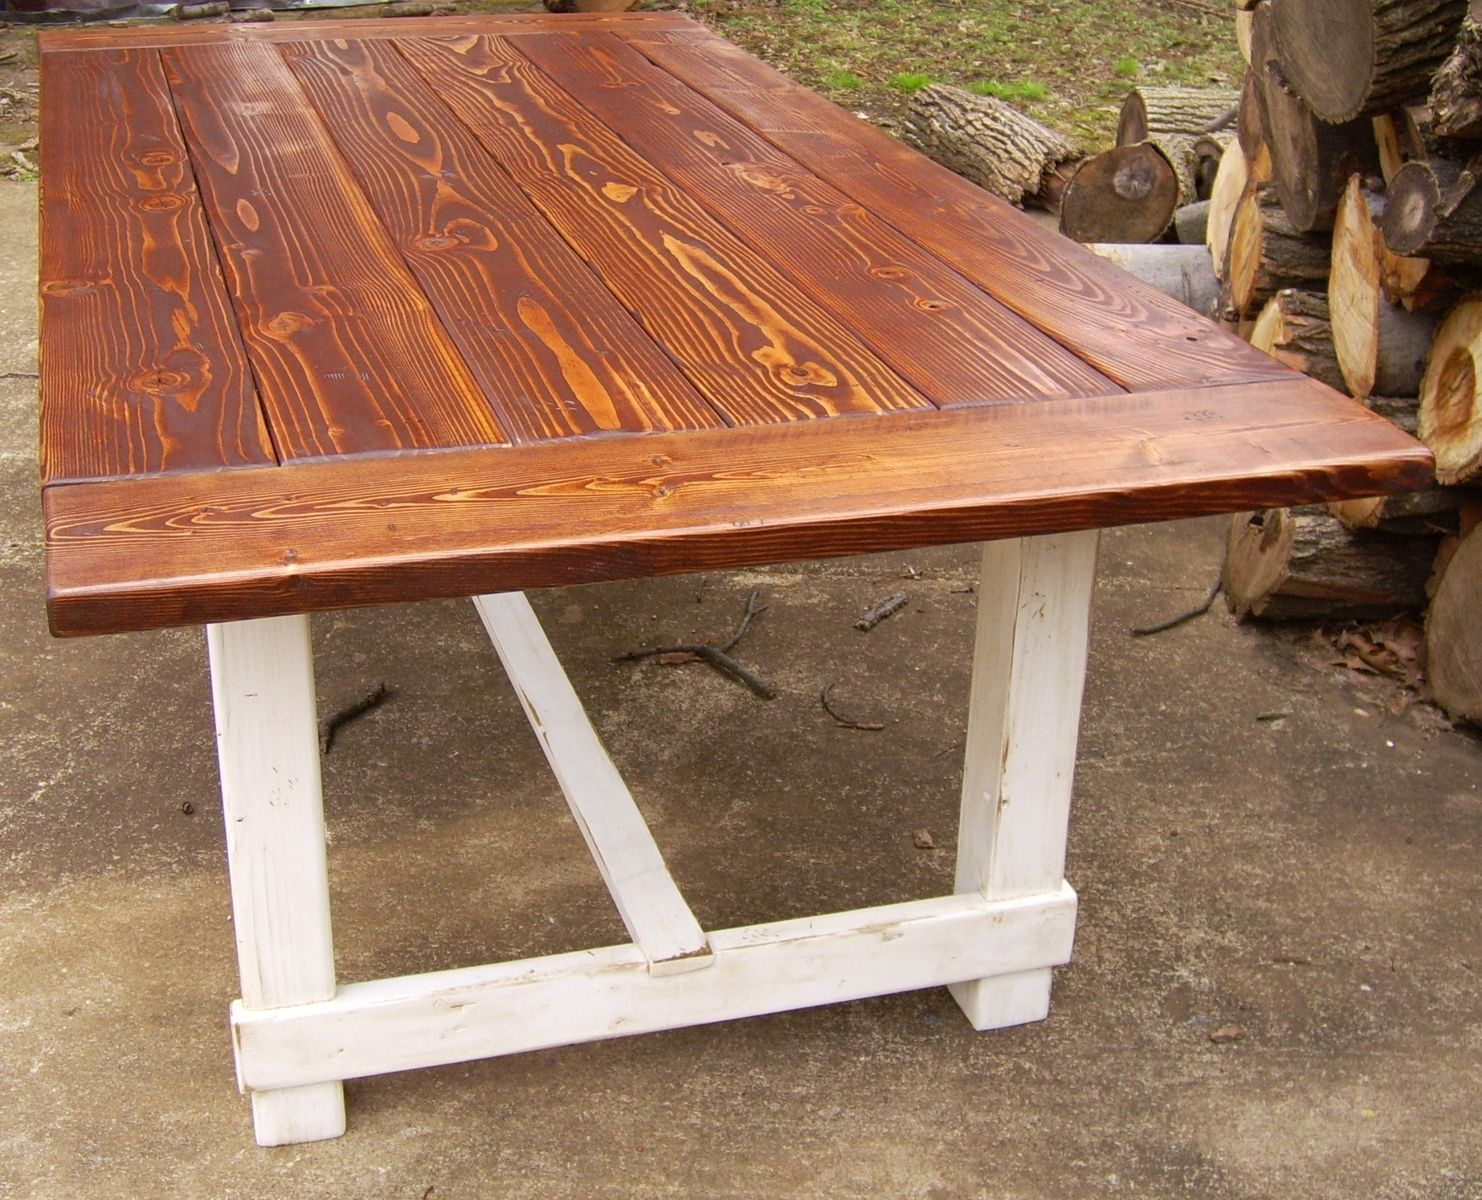 Hand Crafted Reclaimed Wood Trestle Style Farmhouse Table With White Base  by Wonderland Woodworks | CustomMade.com - Hand Crafted Reclaimed Wood Trestle Style Farmhouse Table With